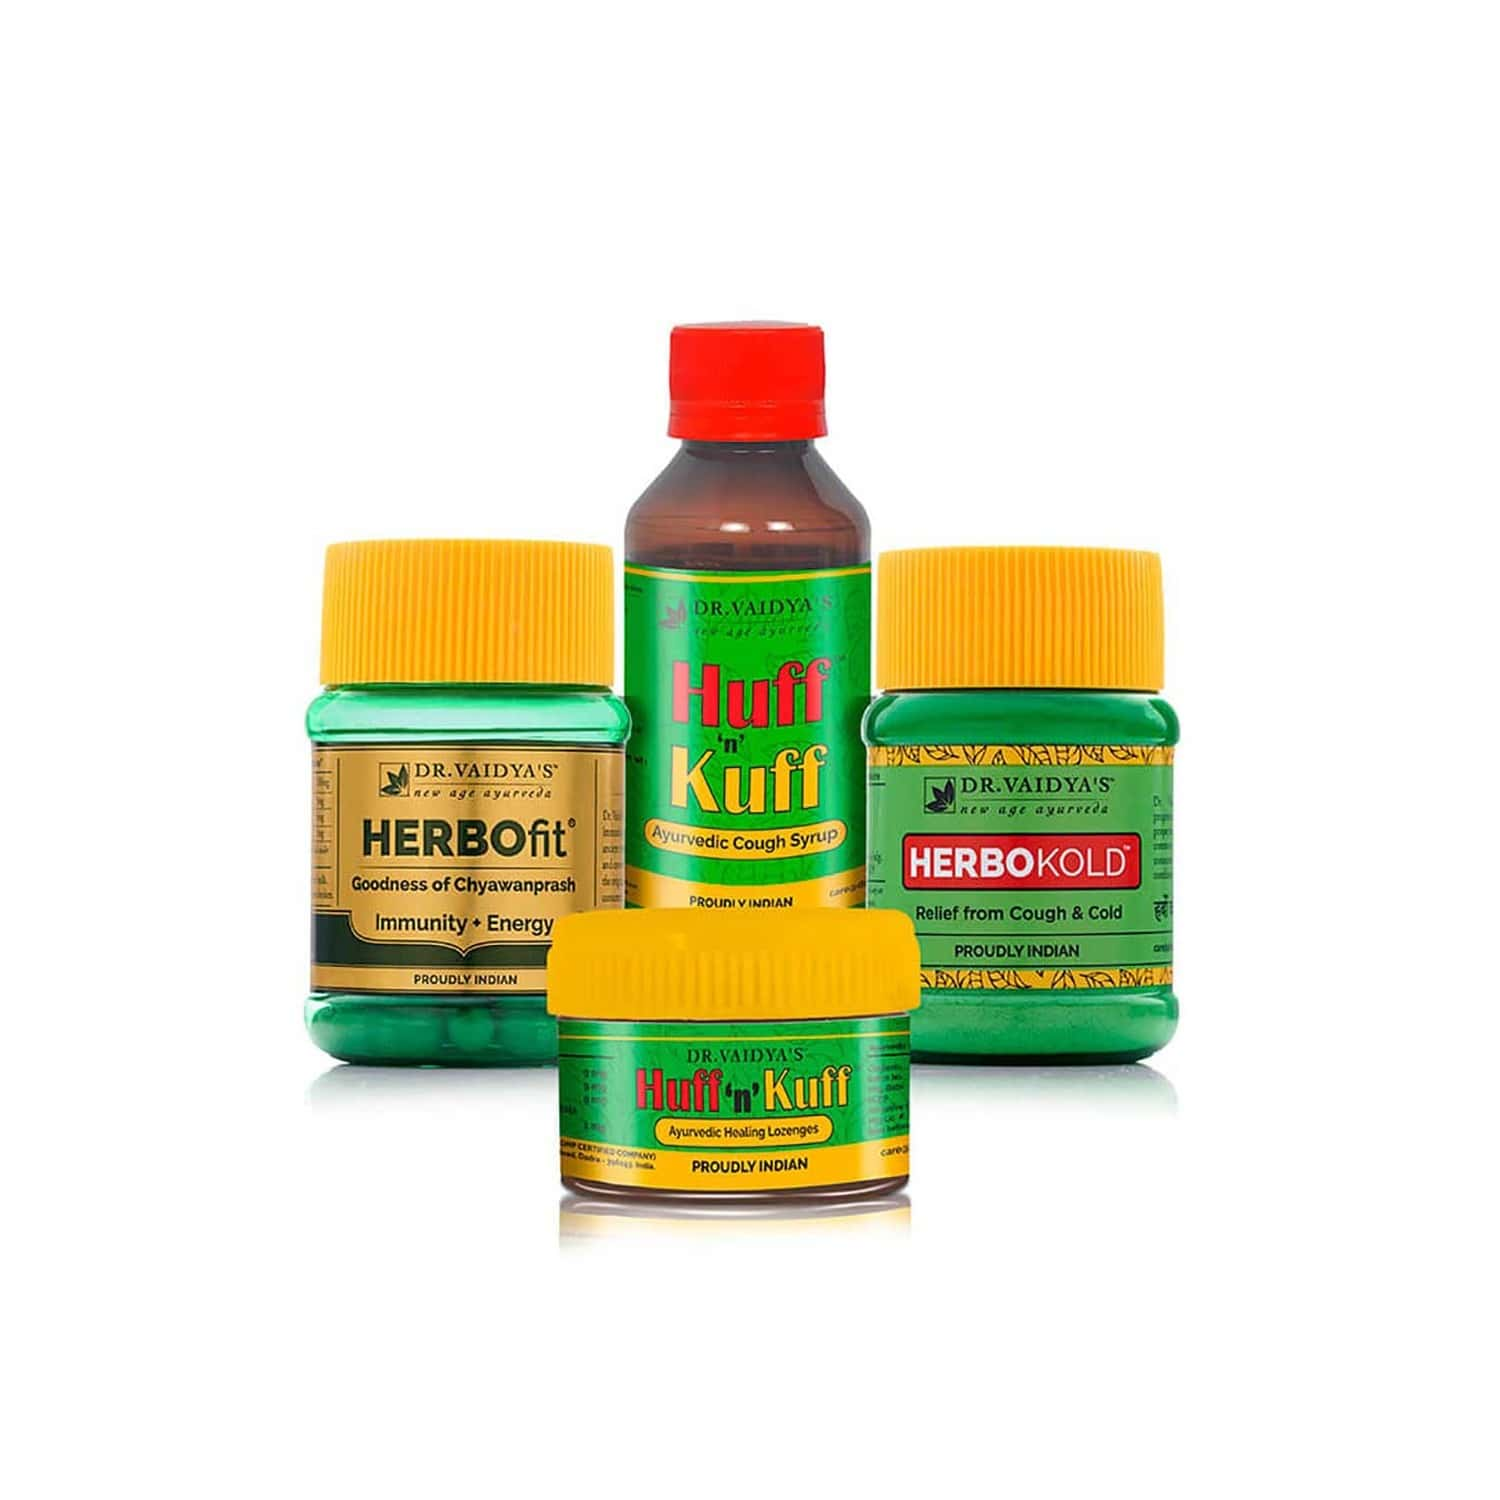 Dr. Vaidya's Cough And Cold Pack | Ayurvedic Relief From Cold And Cough | Herbofit (30 Capsules X 1) Huff N Kuff Lozenges (50 Pills X 1) Huff N Kuff Syrup (100ml X 2) Herbokold Powder (50gms X 2)